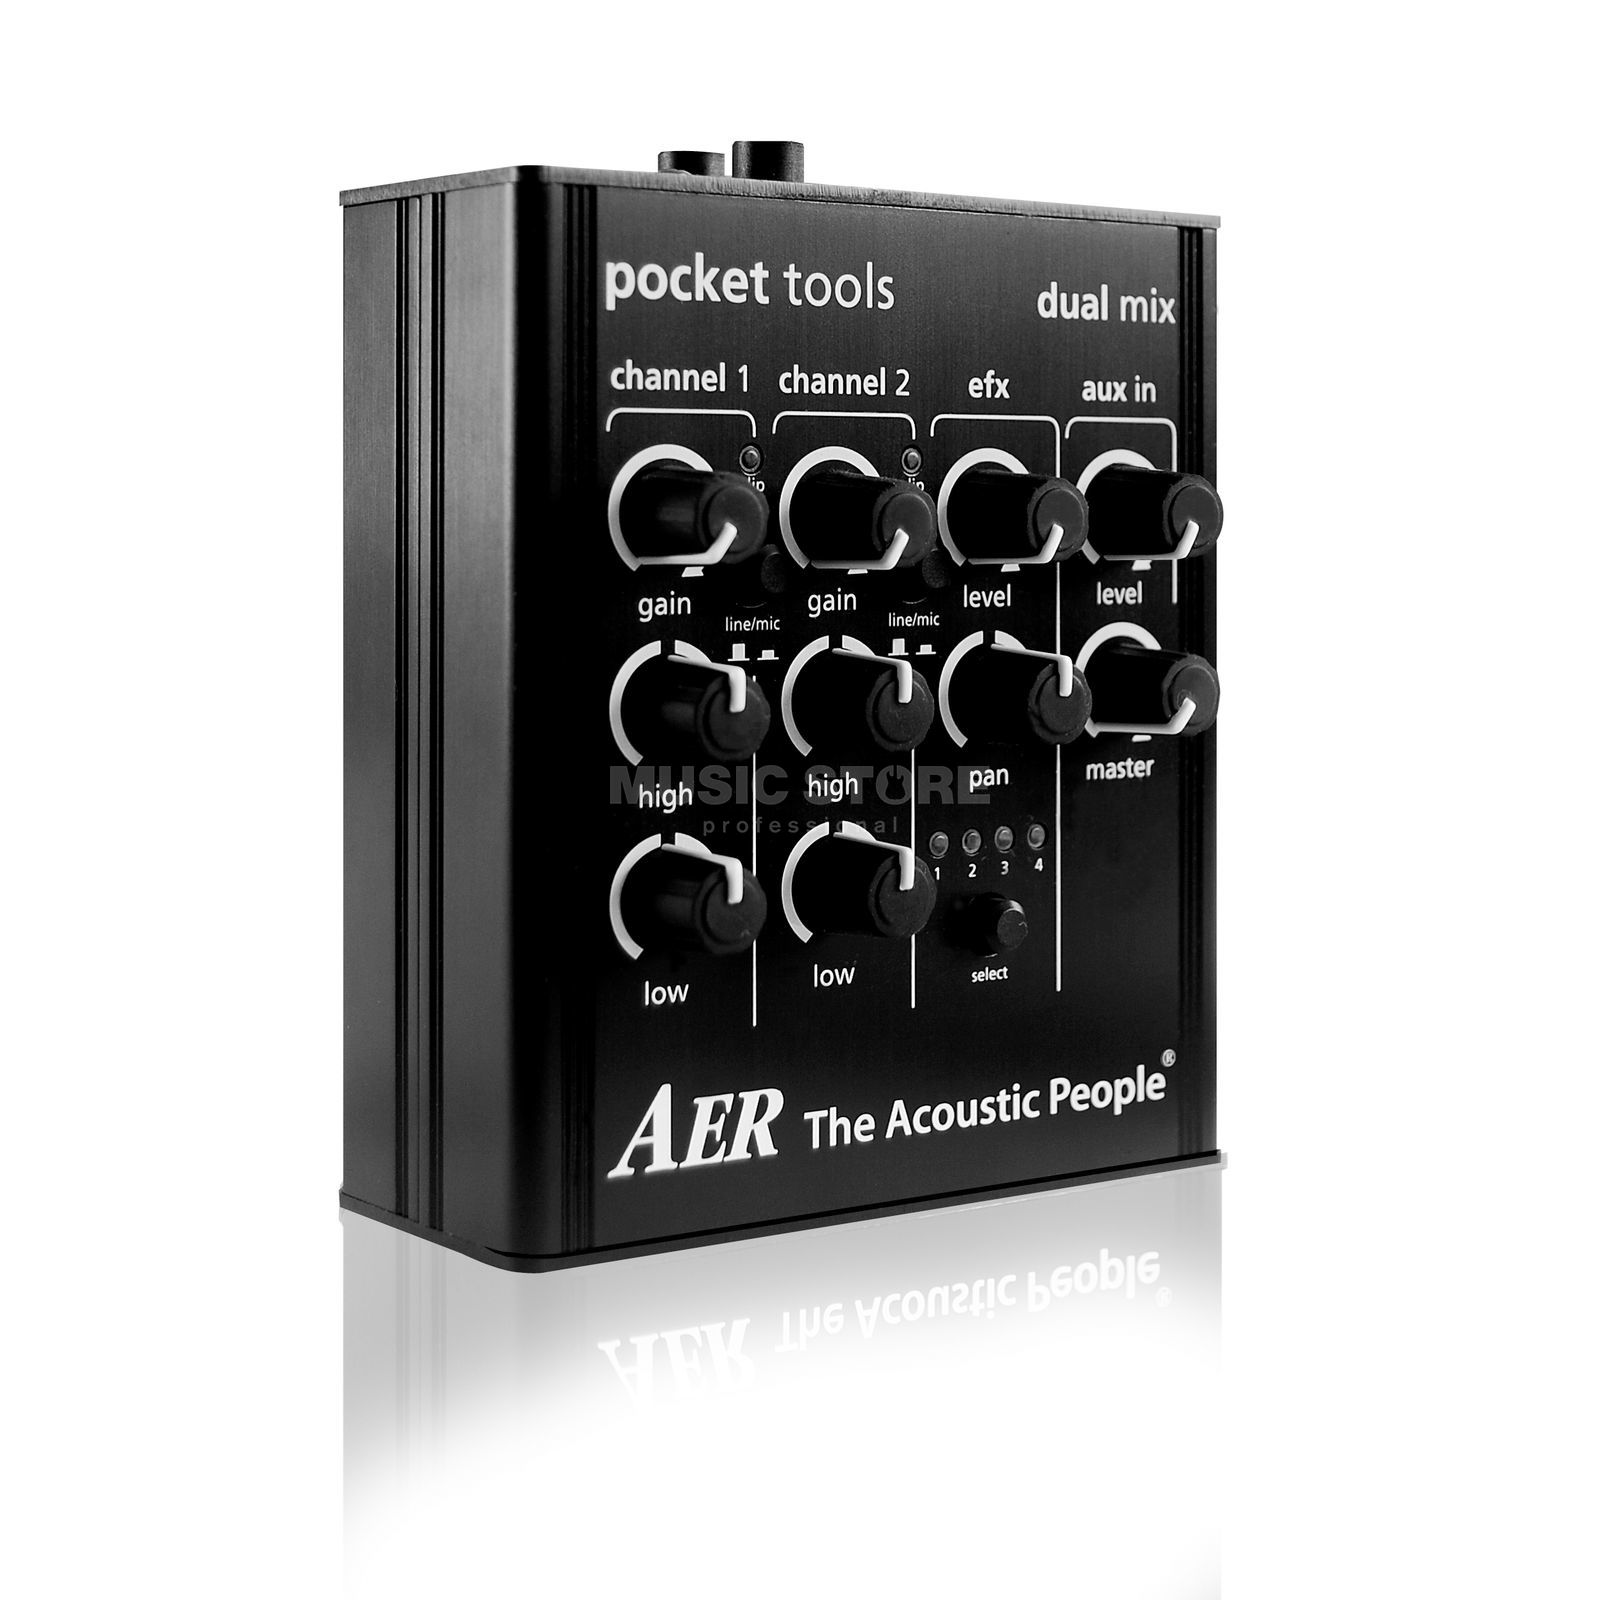 AER Pocket Tool Dual Mix Produktbild